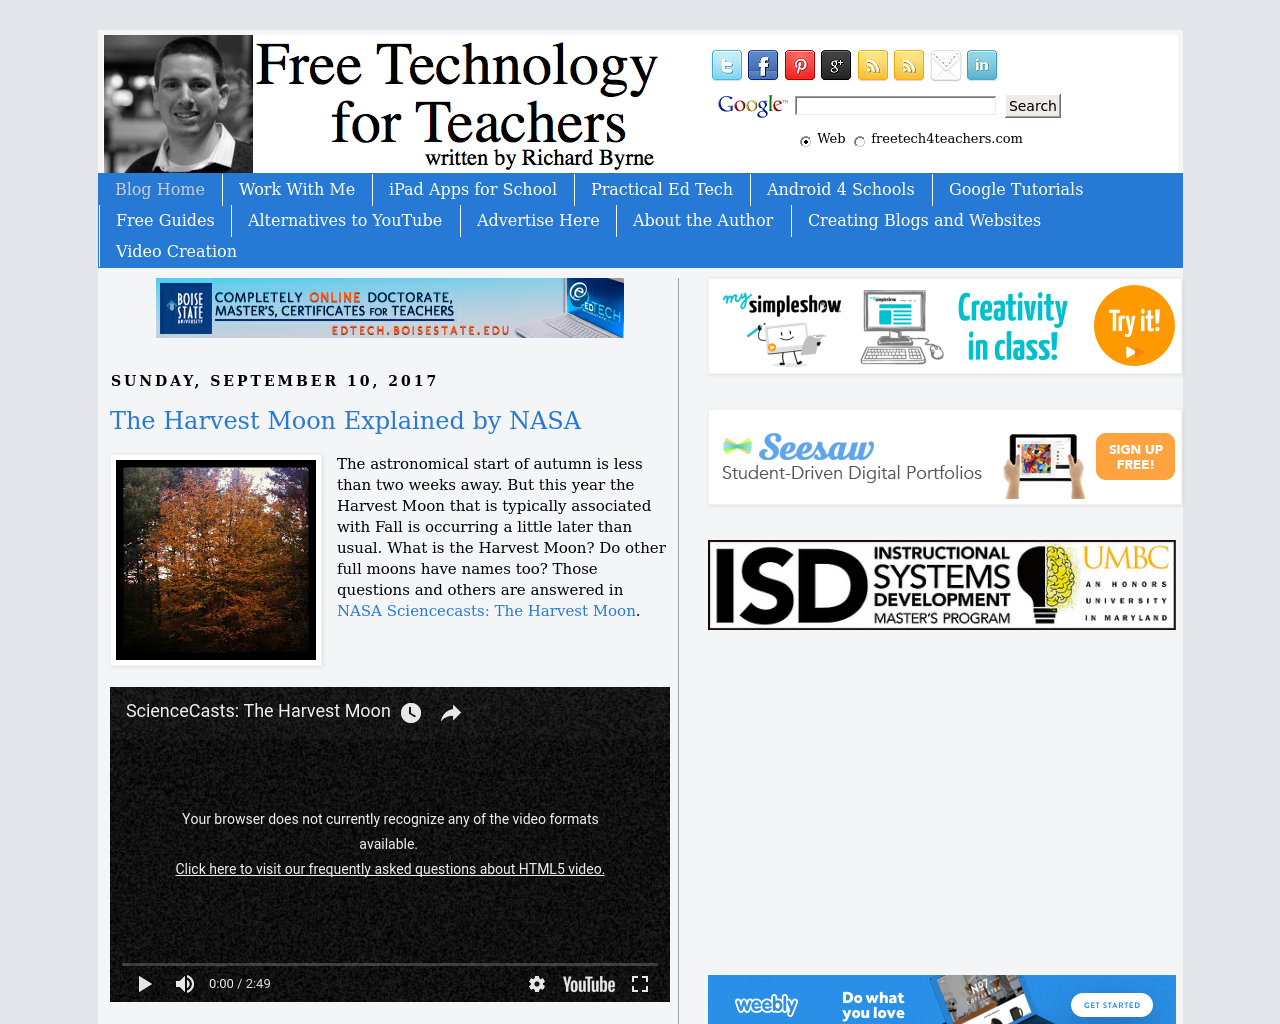 Free-Technology-for-Teachers-Advertising-Reviews-Pricing